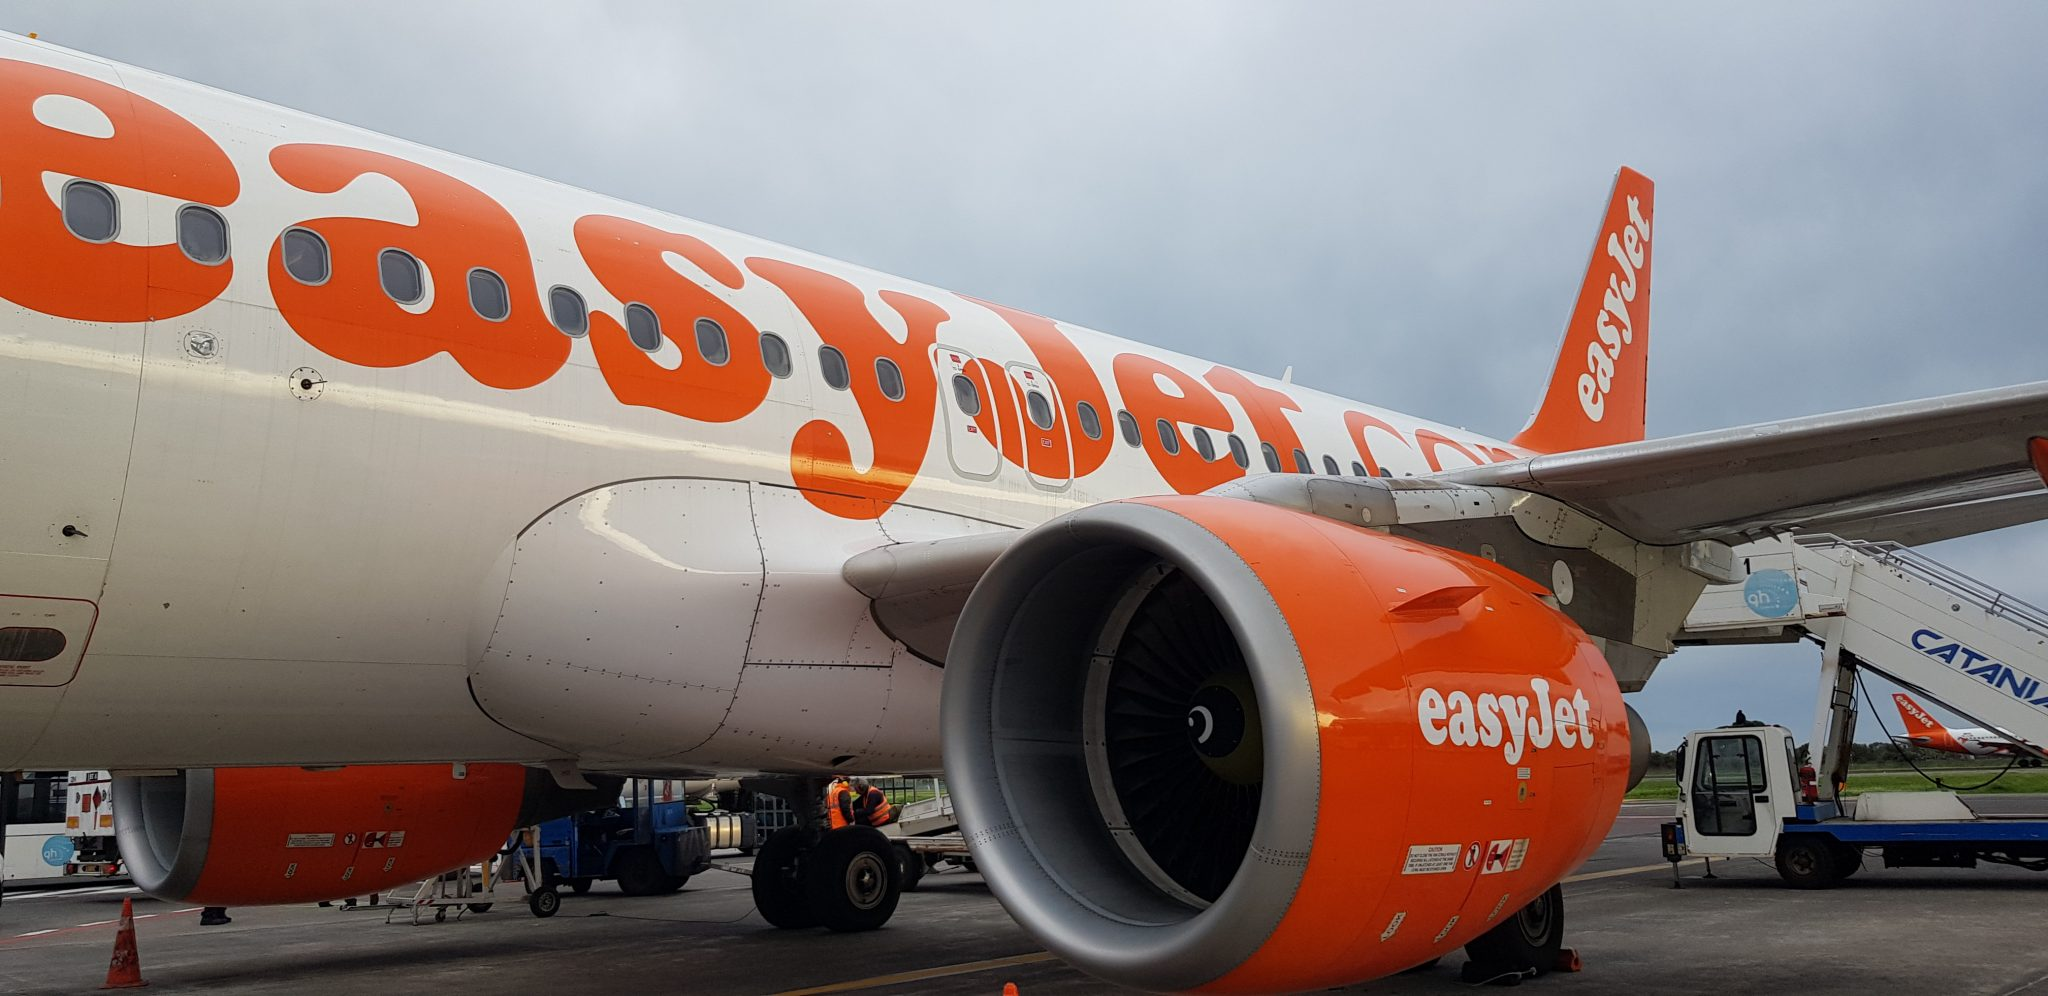 Come fare check-in online con EasyJet